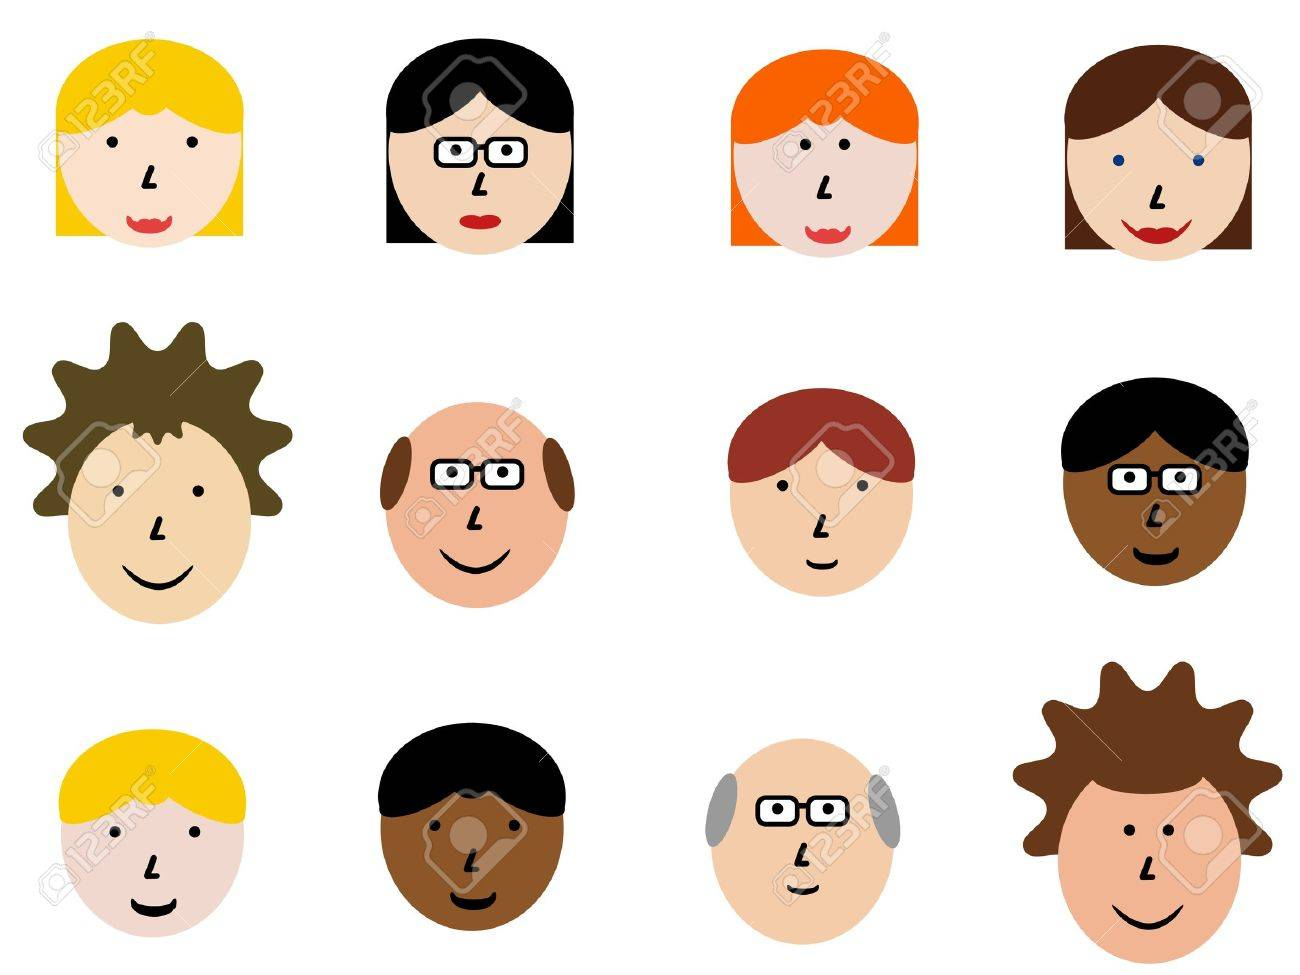 Face icon set - group of face emotions and diverse people group. Design element illustration - simple heads collection. Stock Vector - 10725451